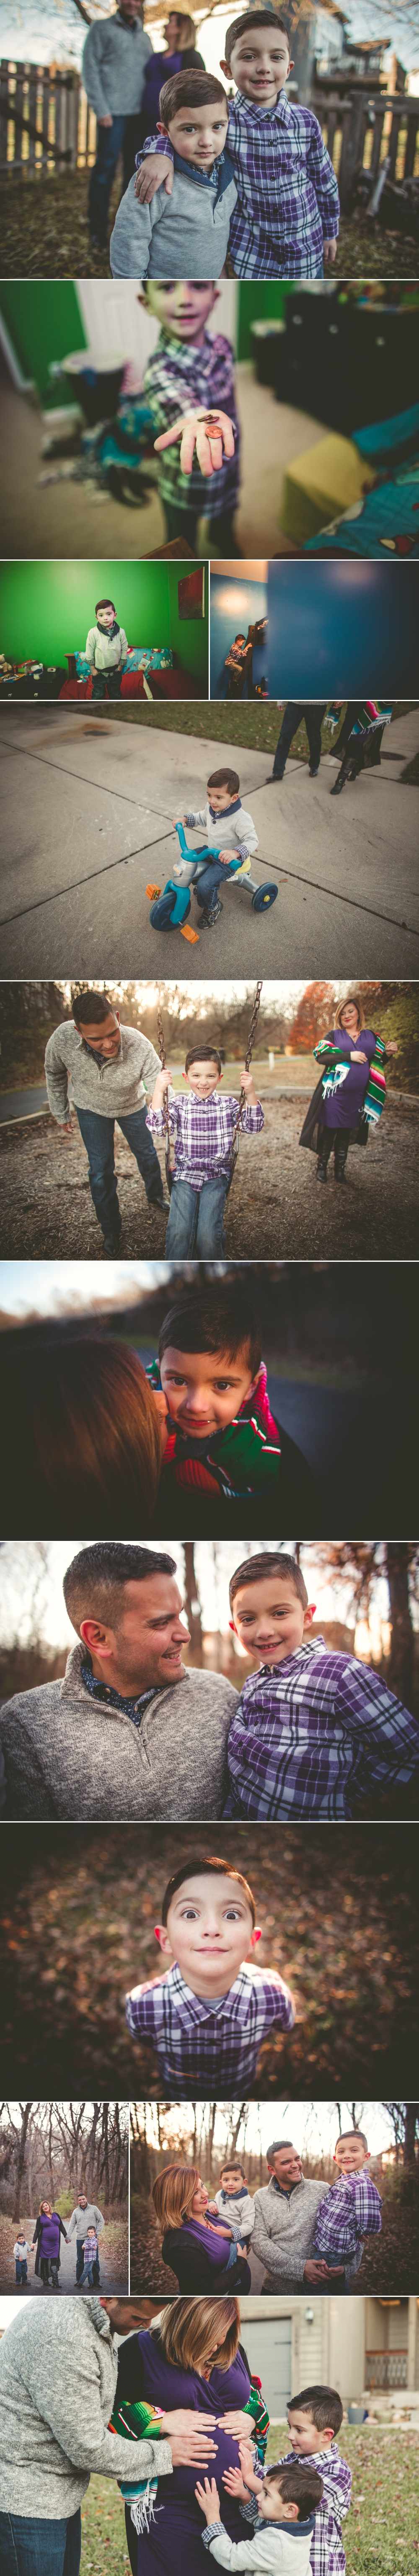 jason_domingues_photography_best_kansas_city_photographer_day_life_session_family_portraits_documentary_lifestyle_photos